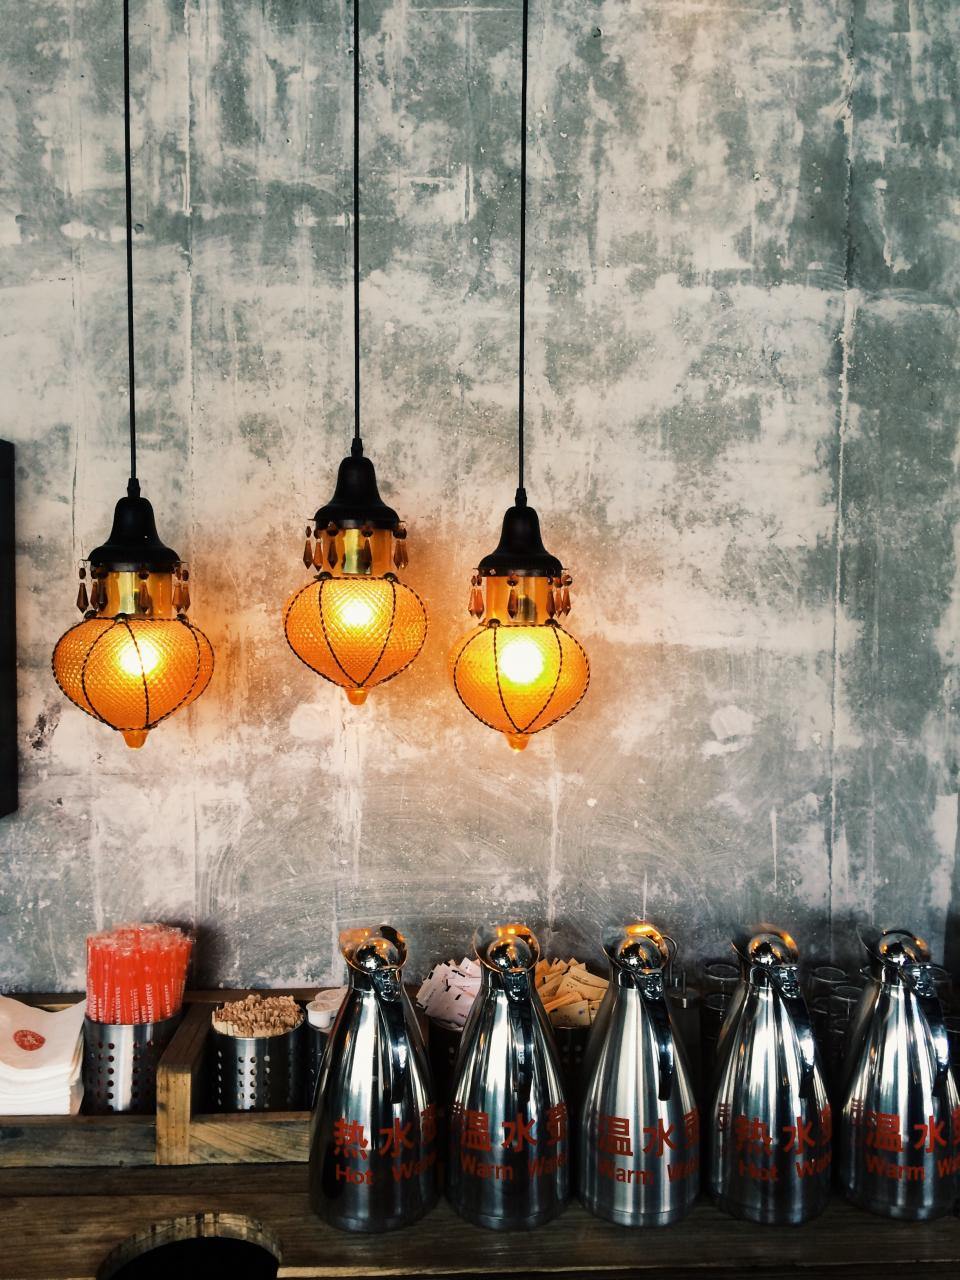 light bulb spark restaurant condiments utensils sauce store wall shop